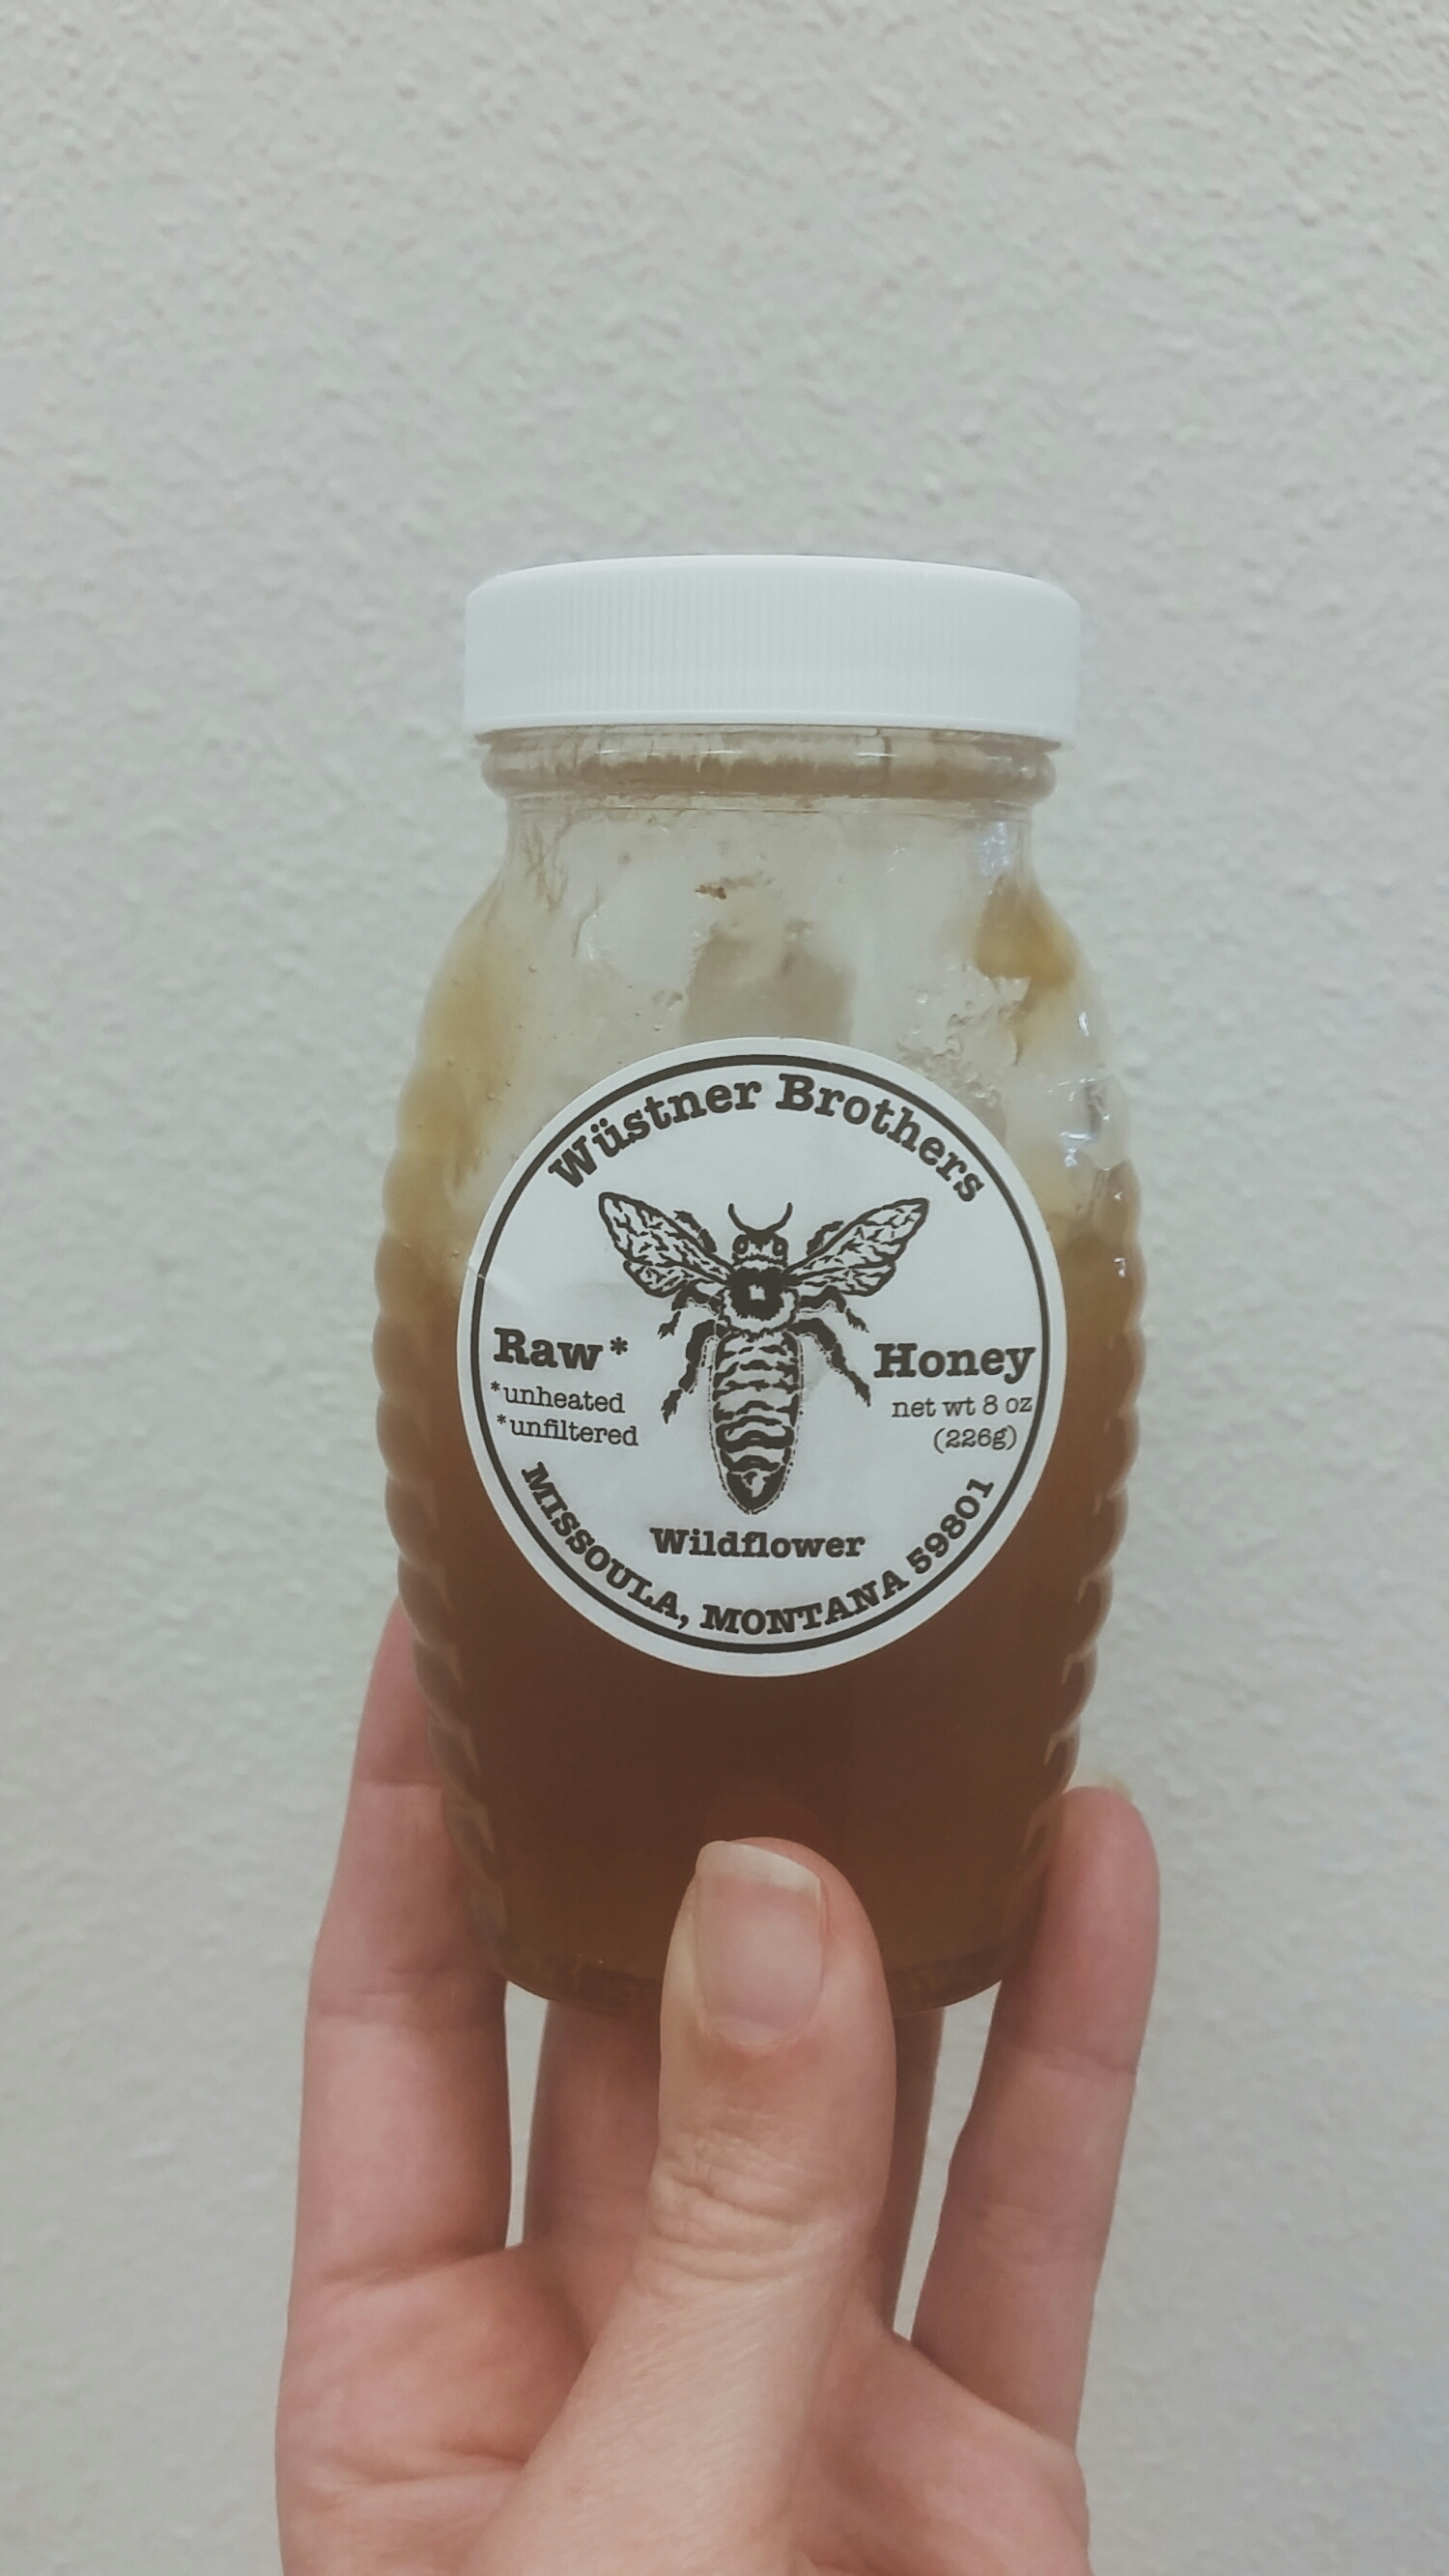 I've managed to go through half of my jar in a little over a week, & it is quite possibly the best honey I've ever had.